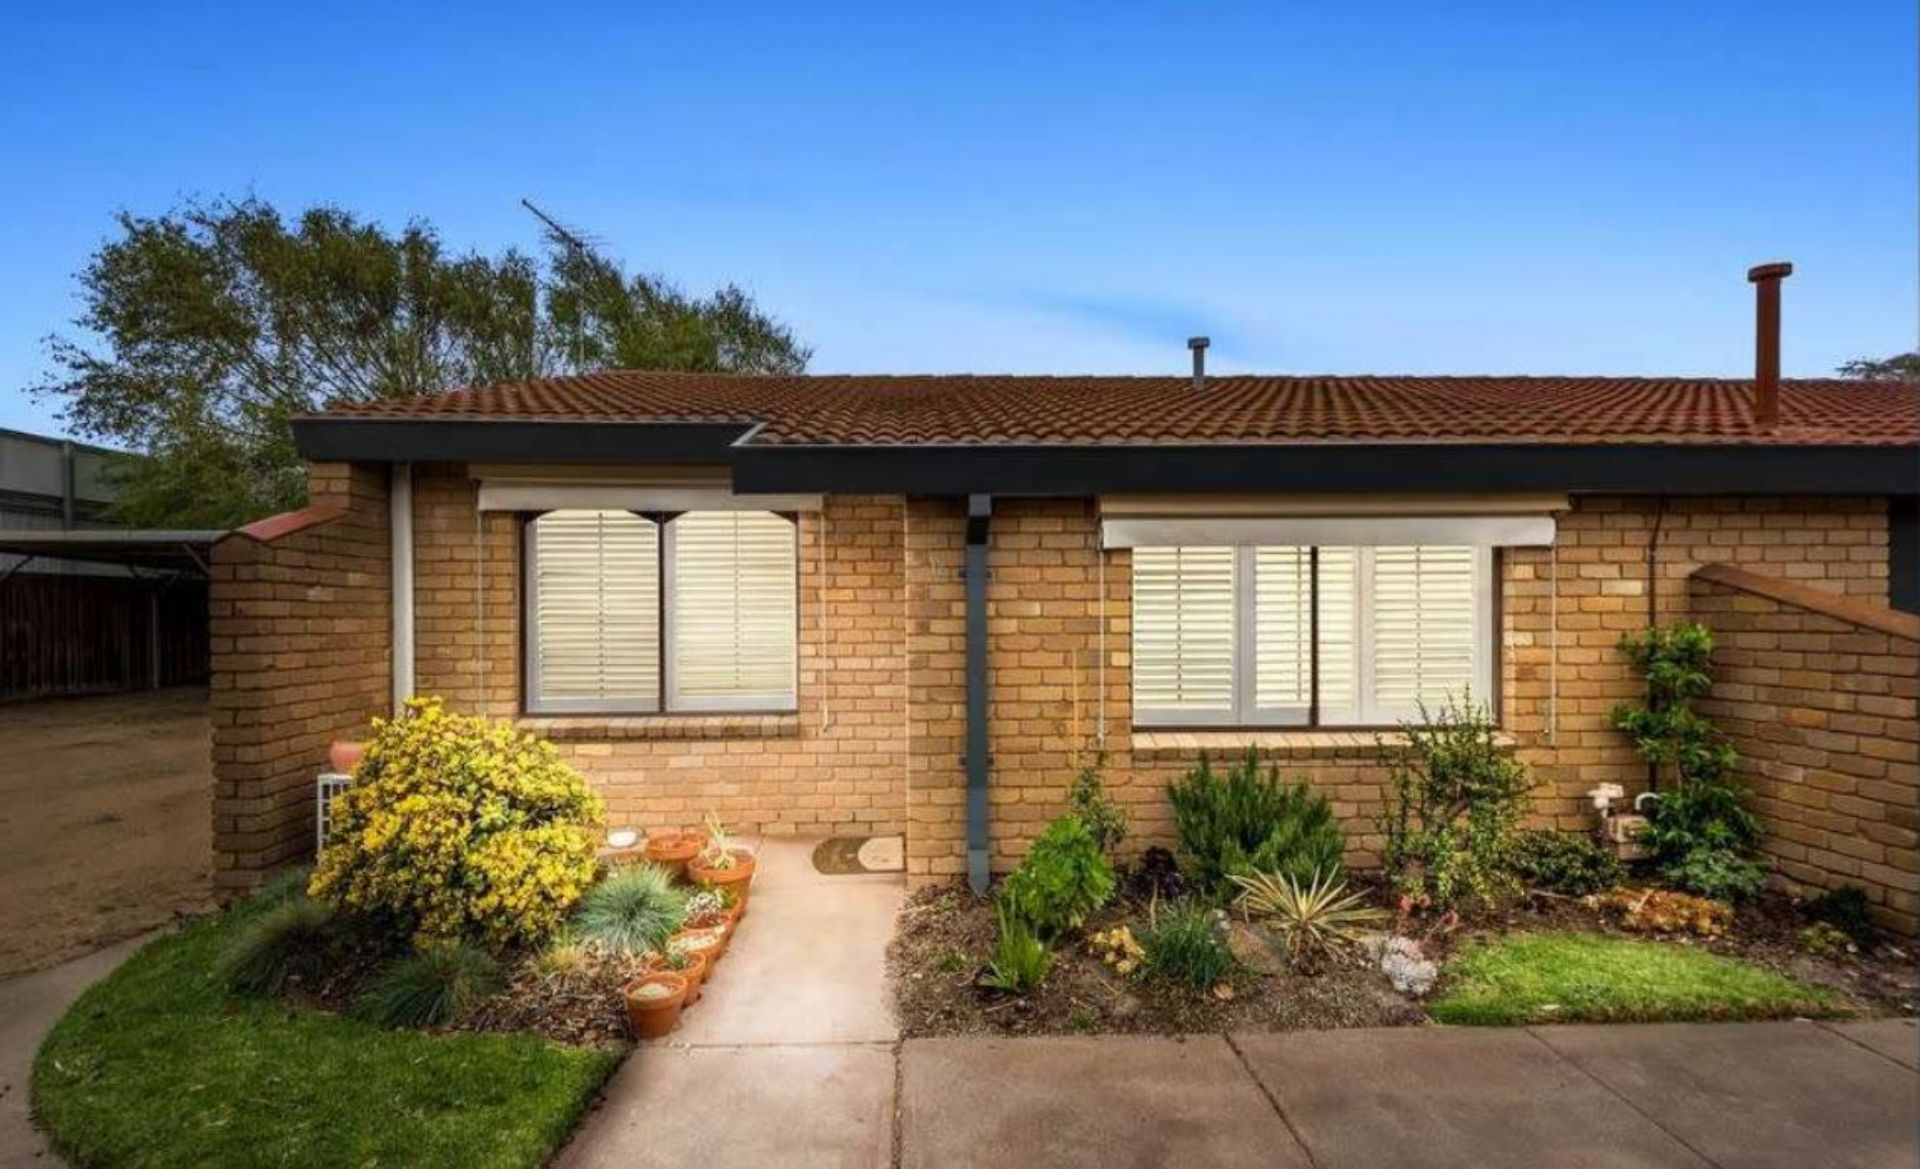 12/8-12 Bainbridge Avenue, SEAFORD, VIC, 3198 - Image